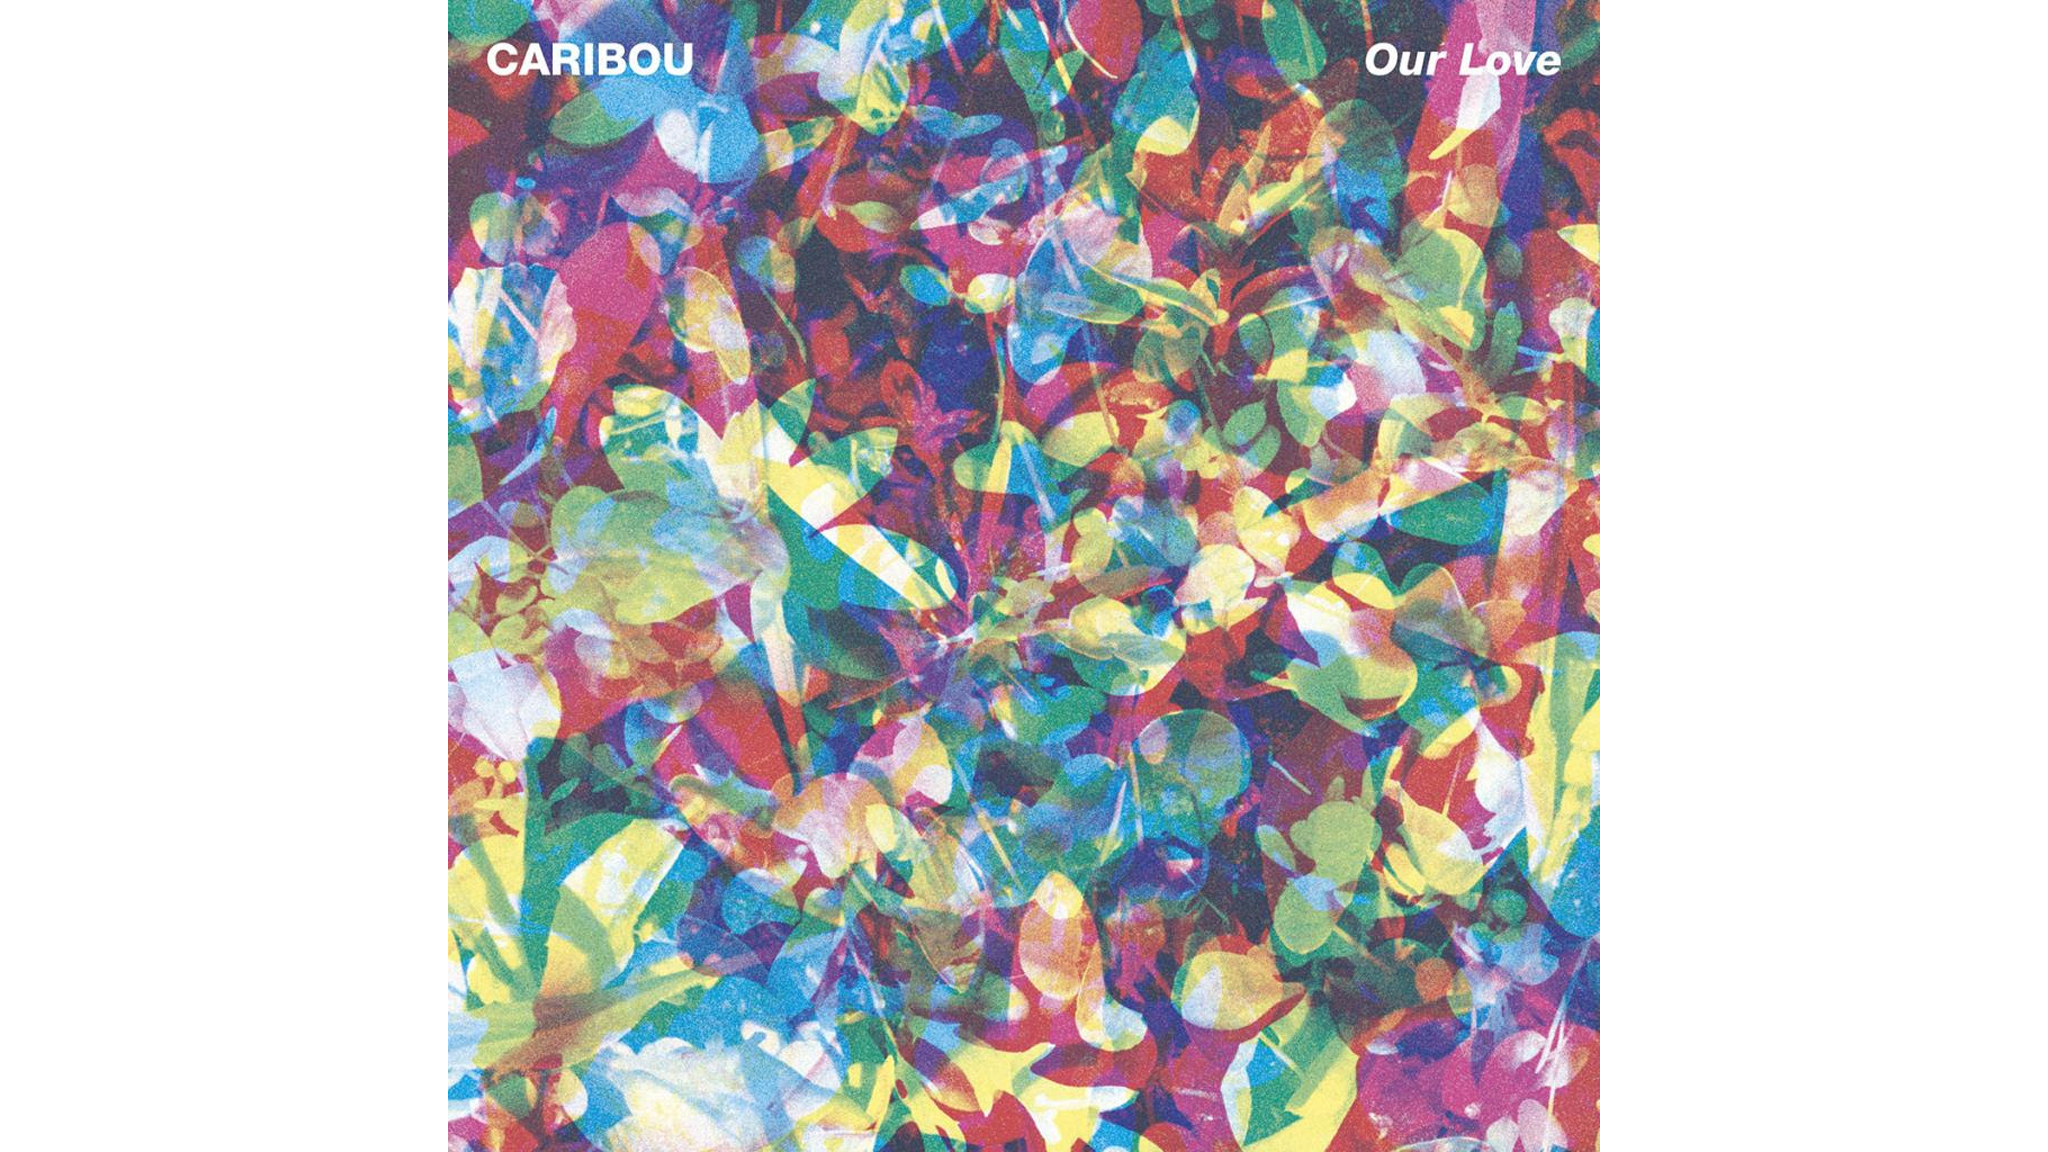 The 50 best sad songs: 'Silver' – Caribou